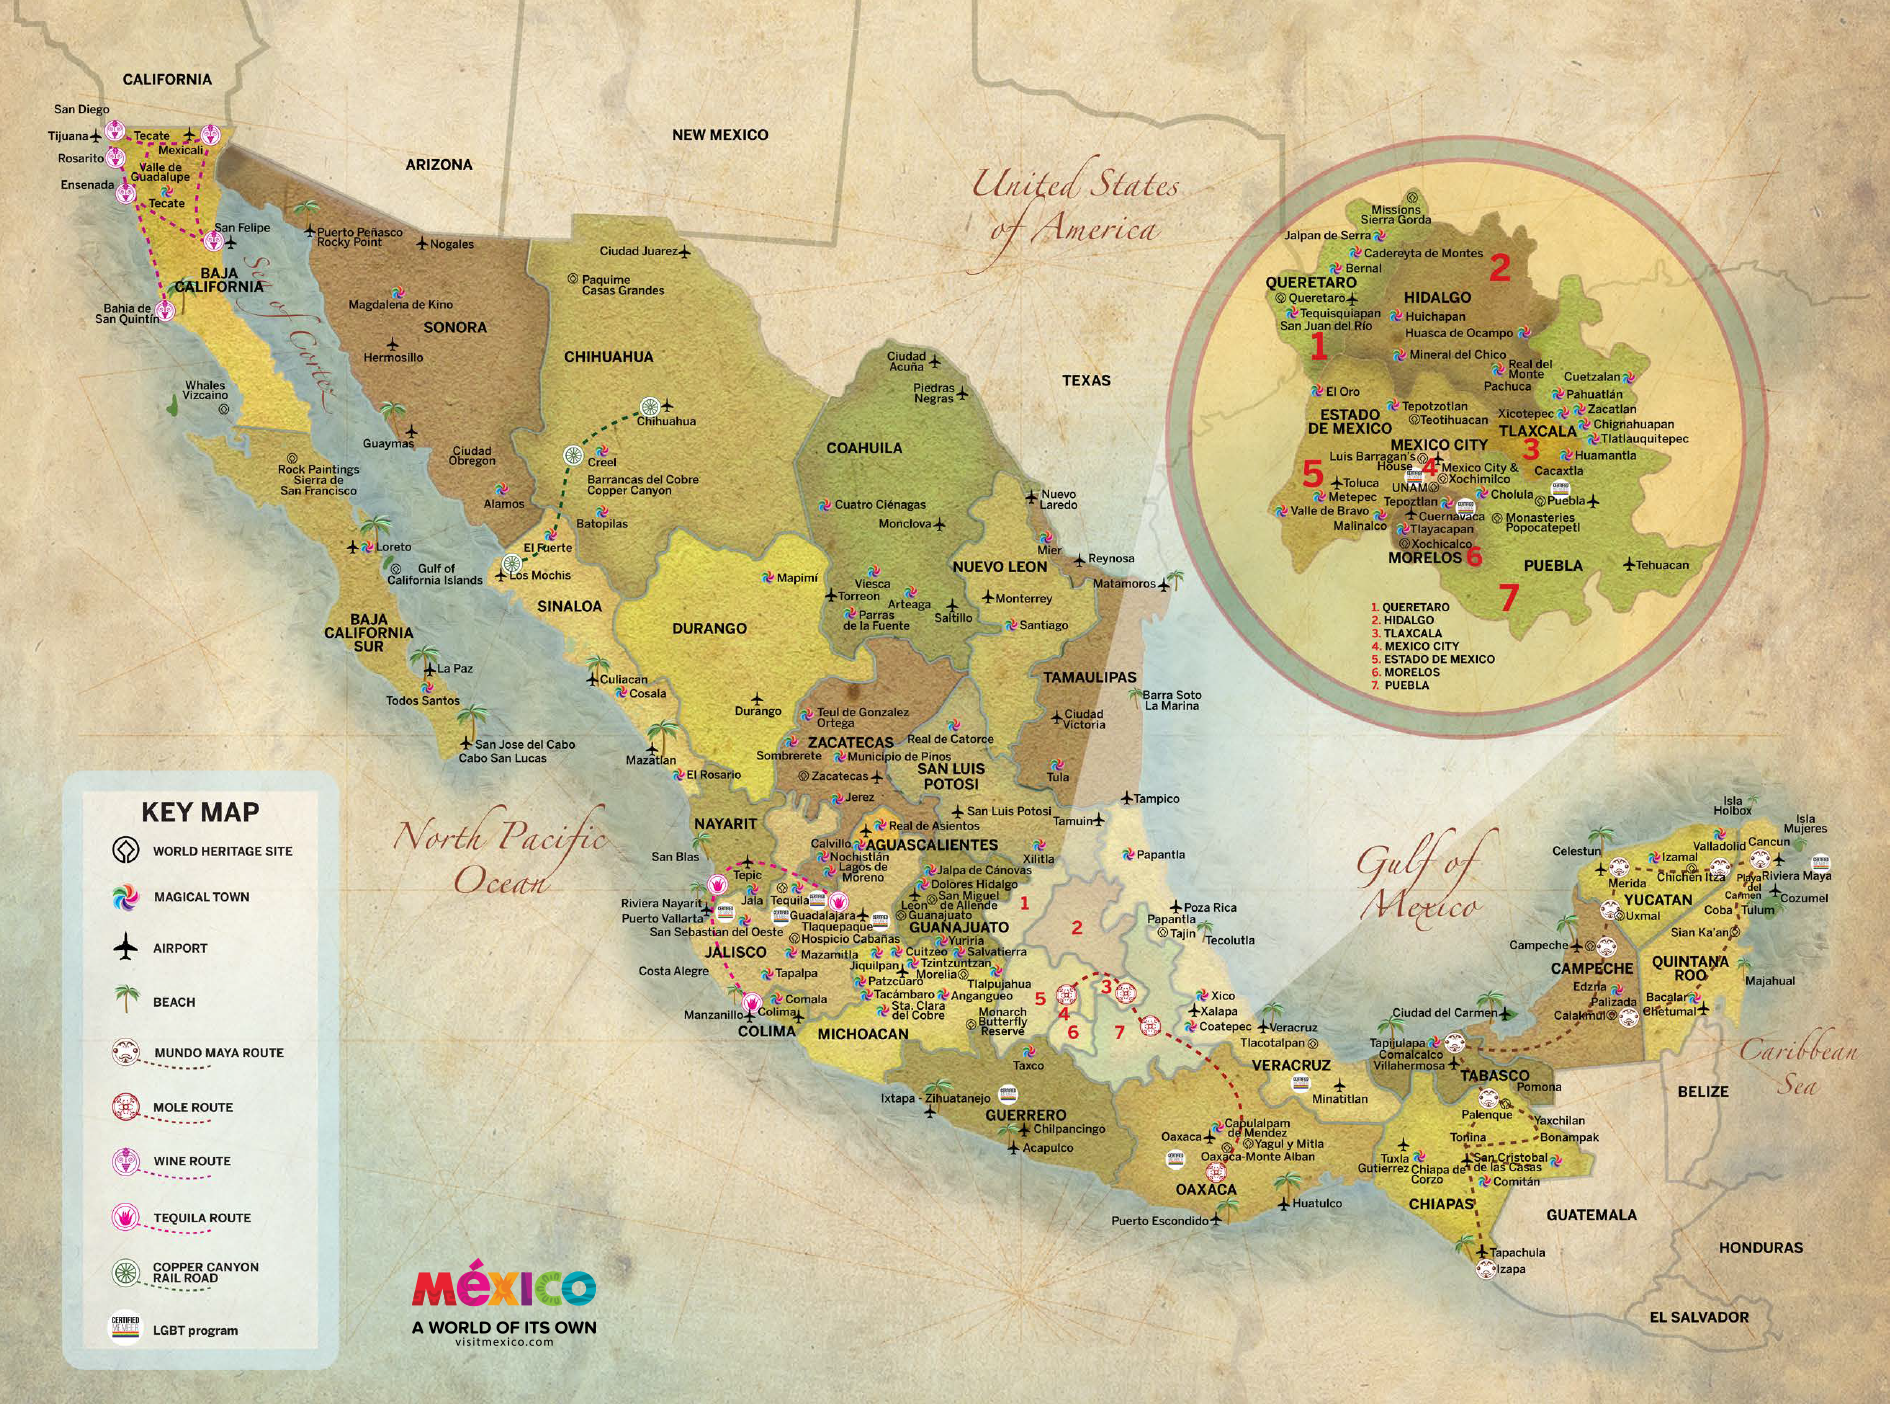 MEXICO_MAP_2017_VERSION_web_side2.png